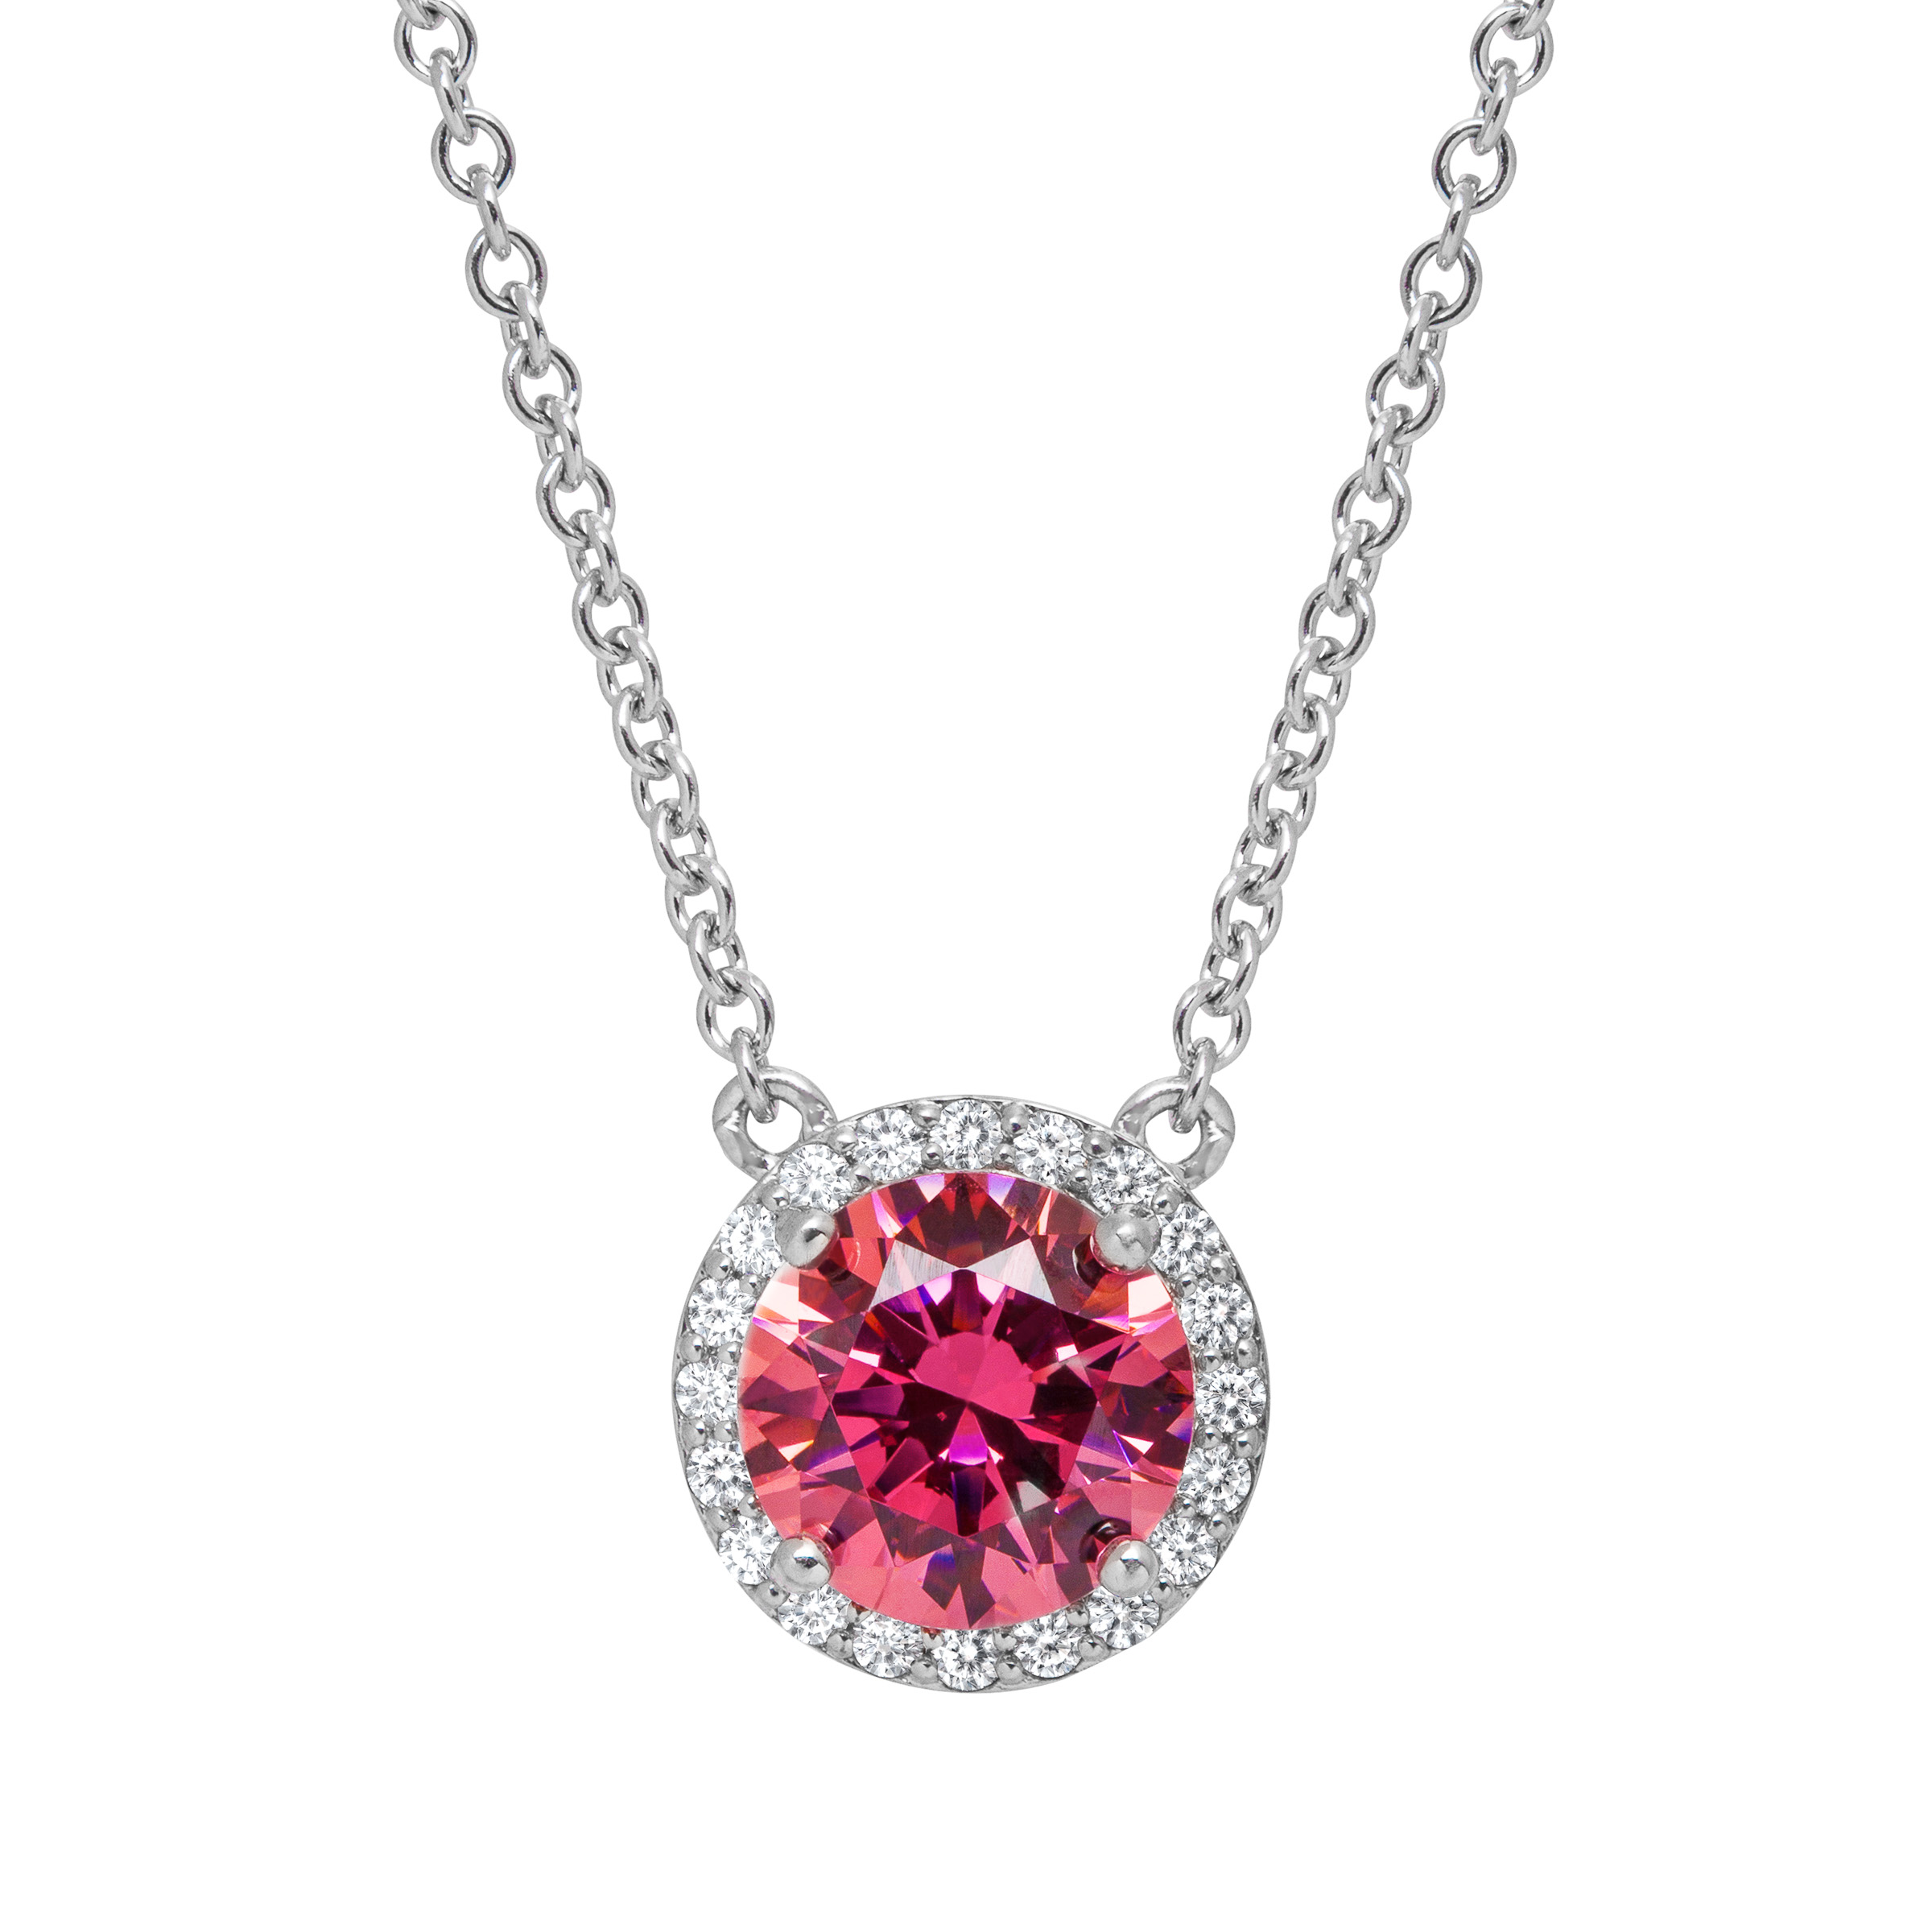 Pendant Necklace with Swarovski Zirconia in Sterling Silver